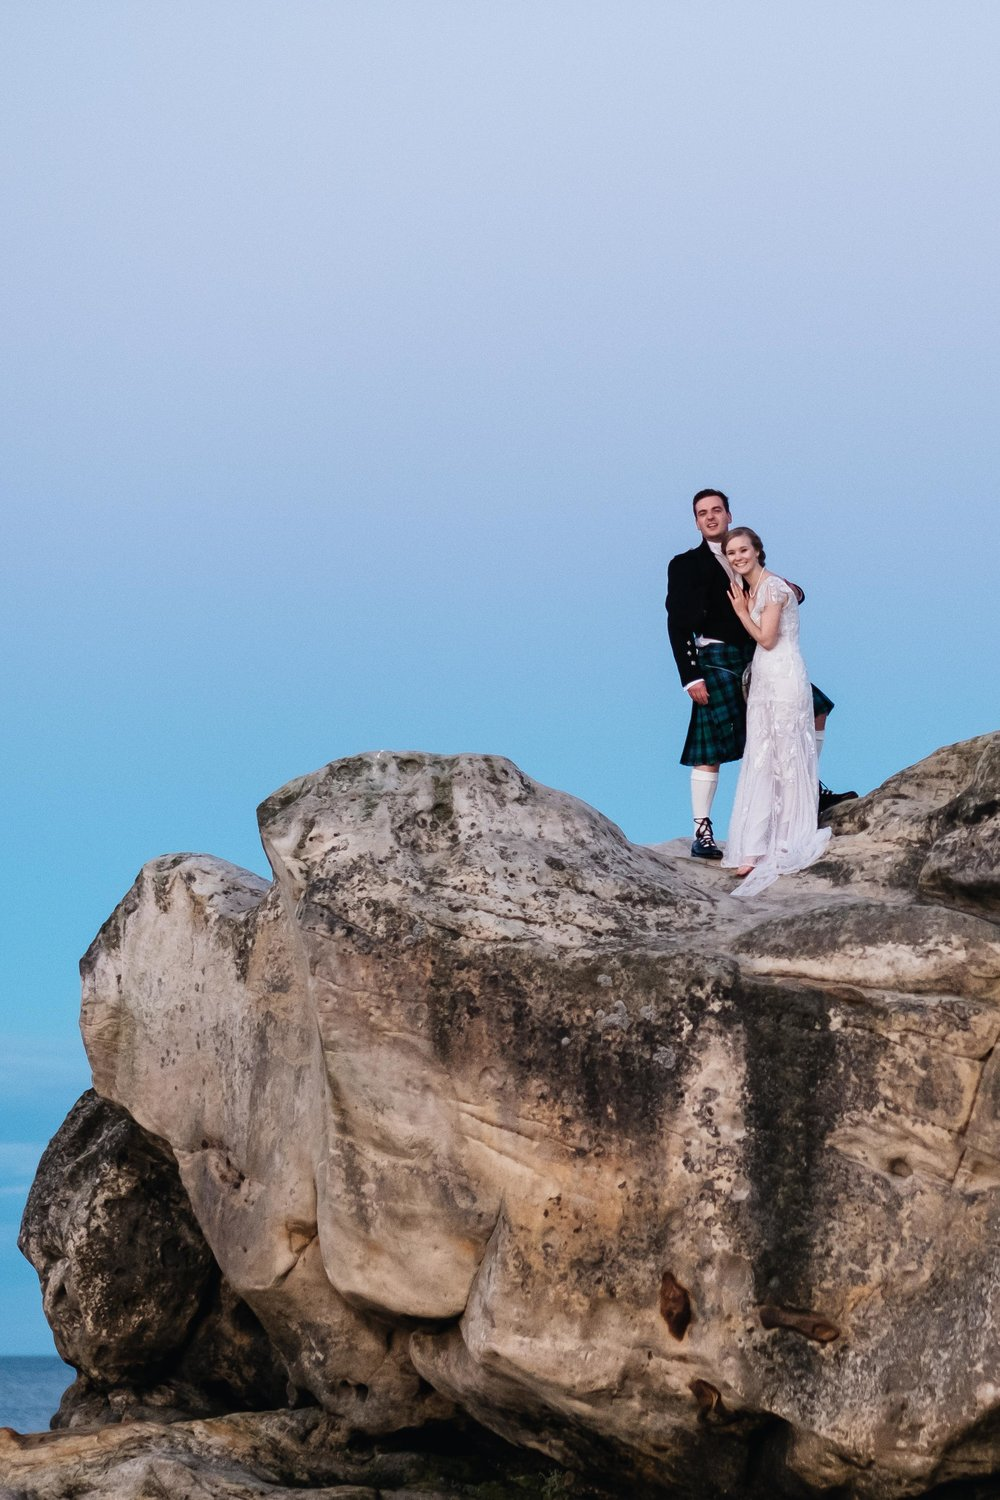 A bride and groom are standing on a rock.